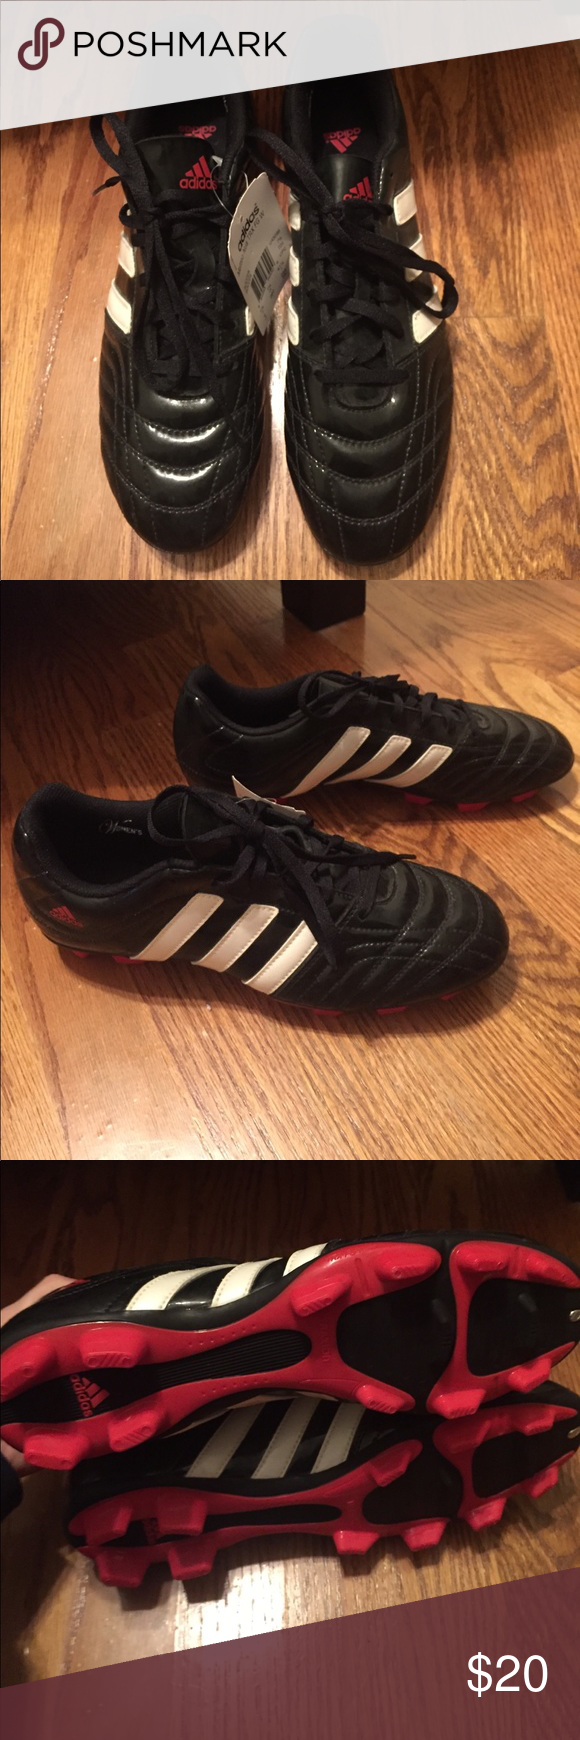 Brand new adidas soccer cleats Never worn with tag. Adidas brand cleats size 9 adidas Shoes